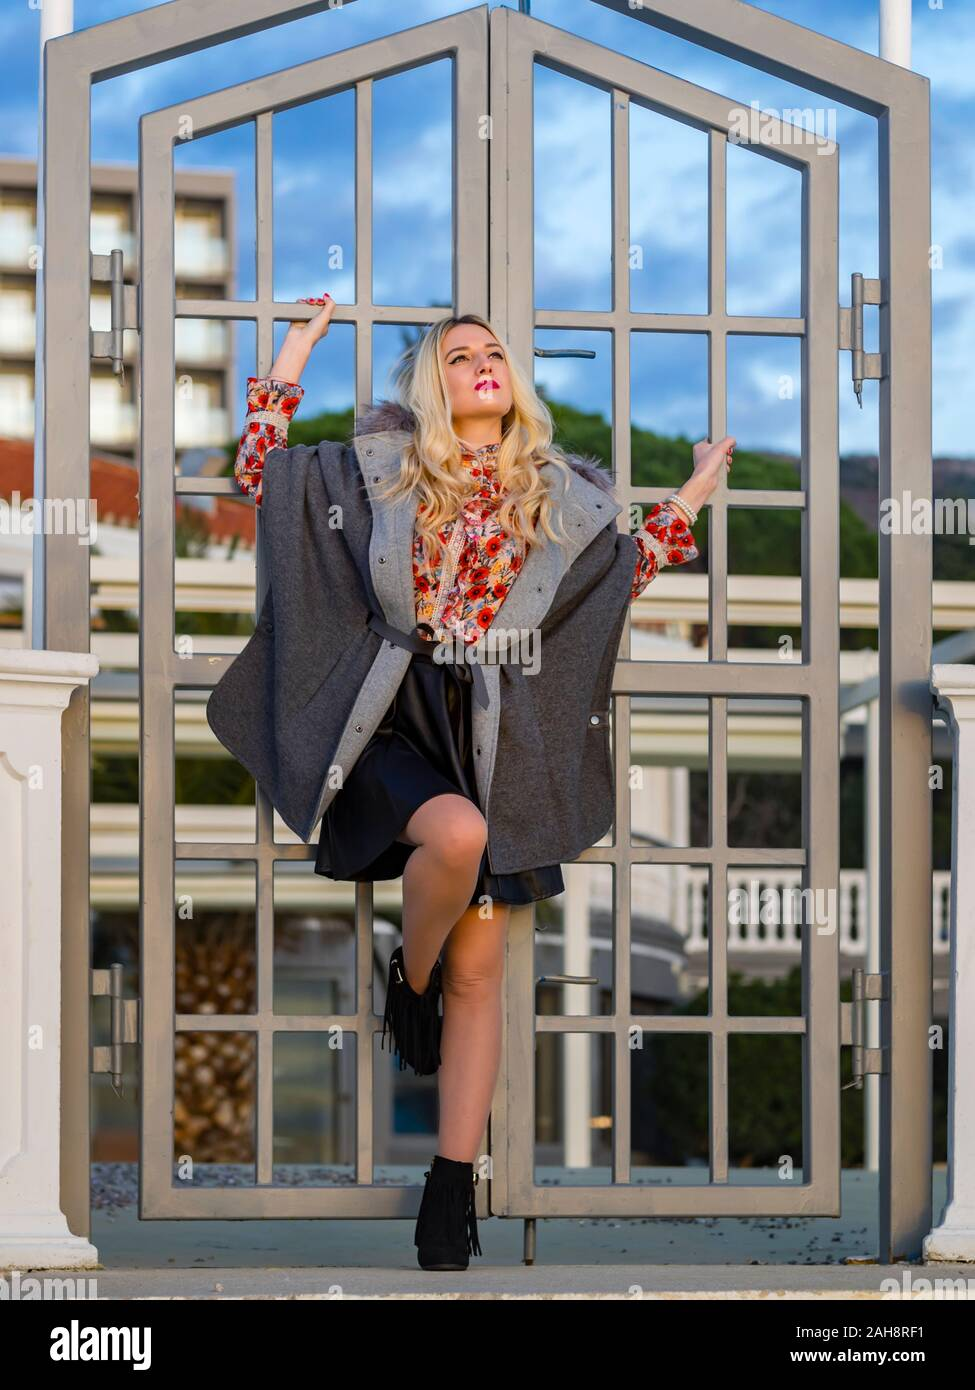 Fanciful blonde young lady spreading on metal fence door entrance serious looking up upwards daydreaming day-dreaming anticipating anticipate Stock Photo